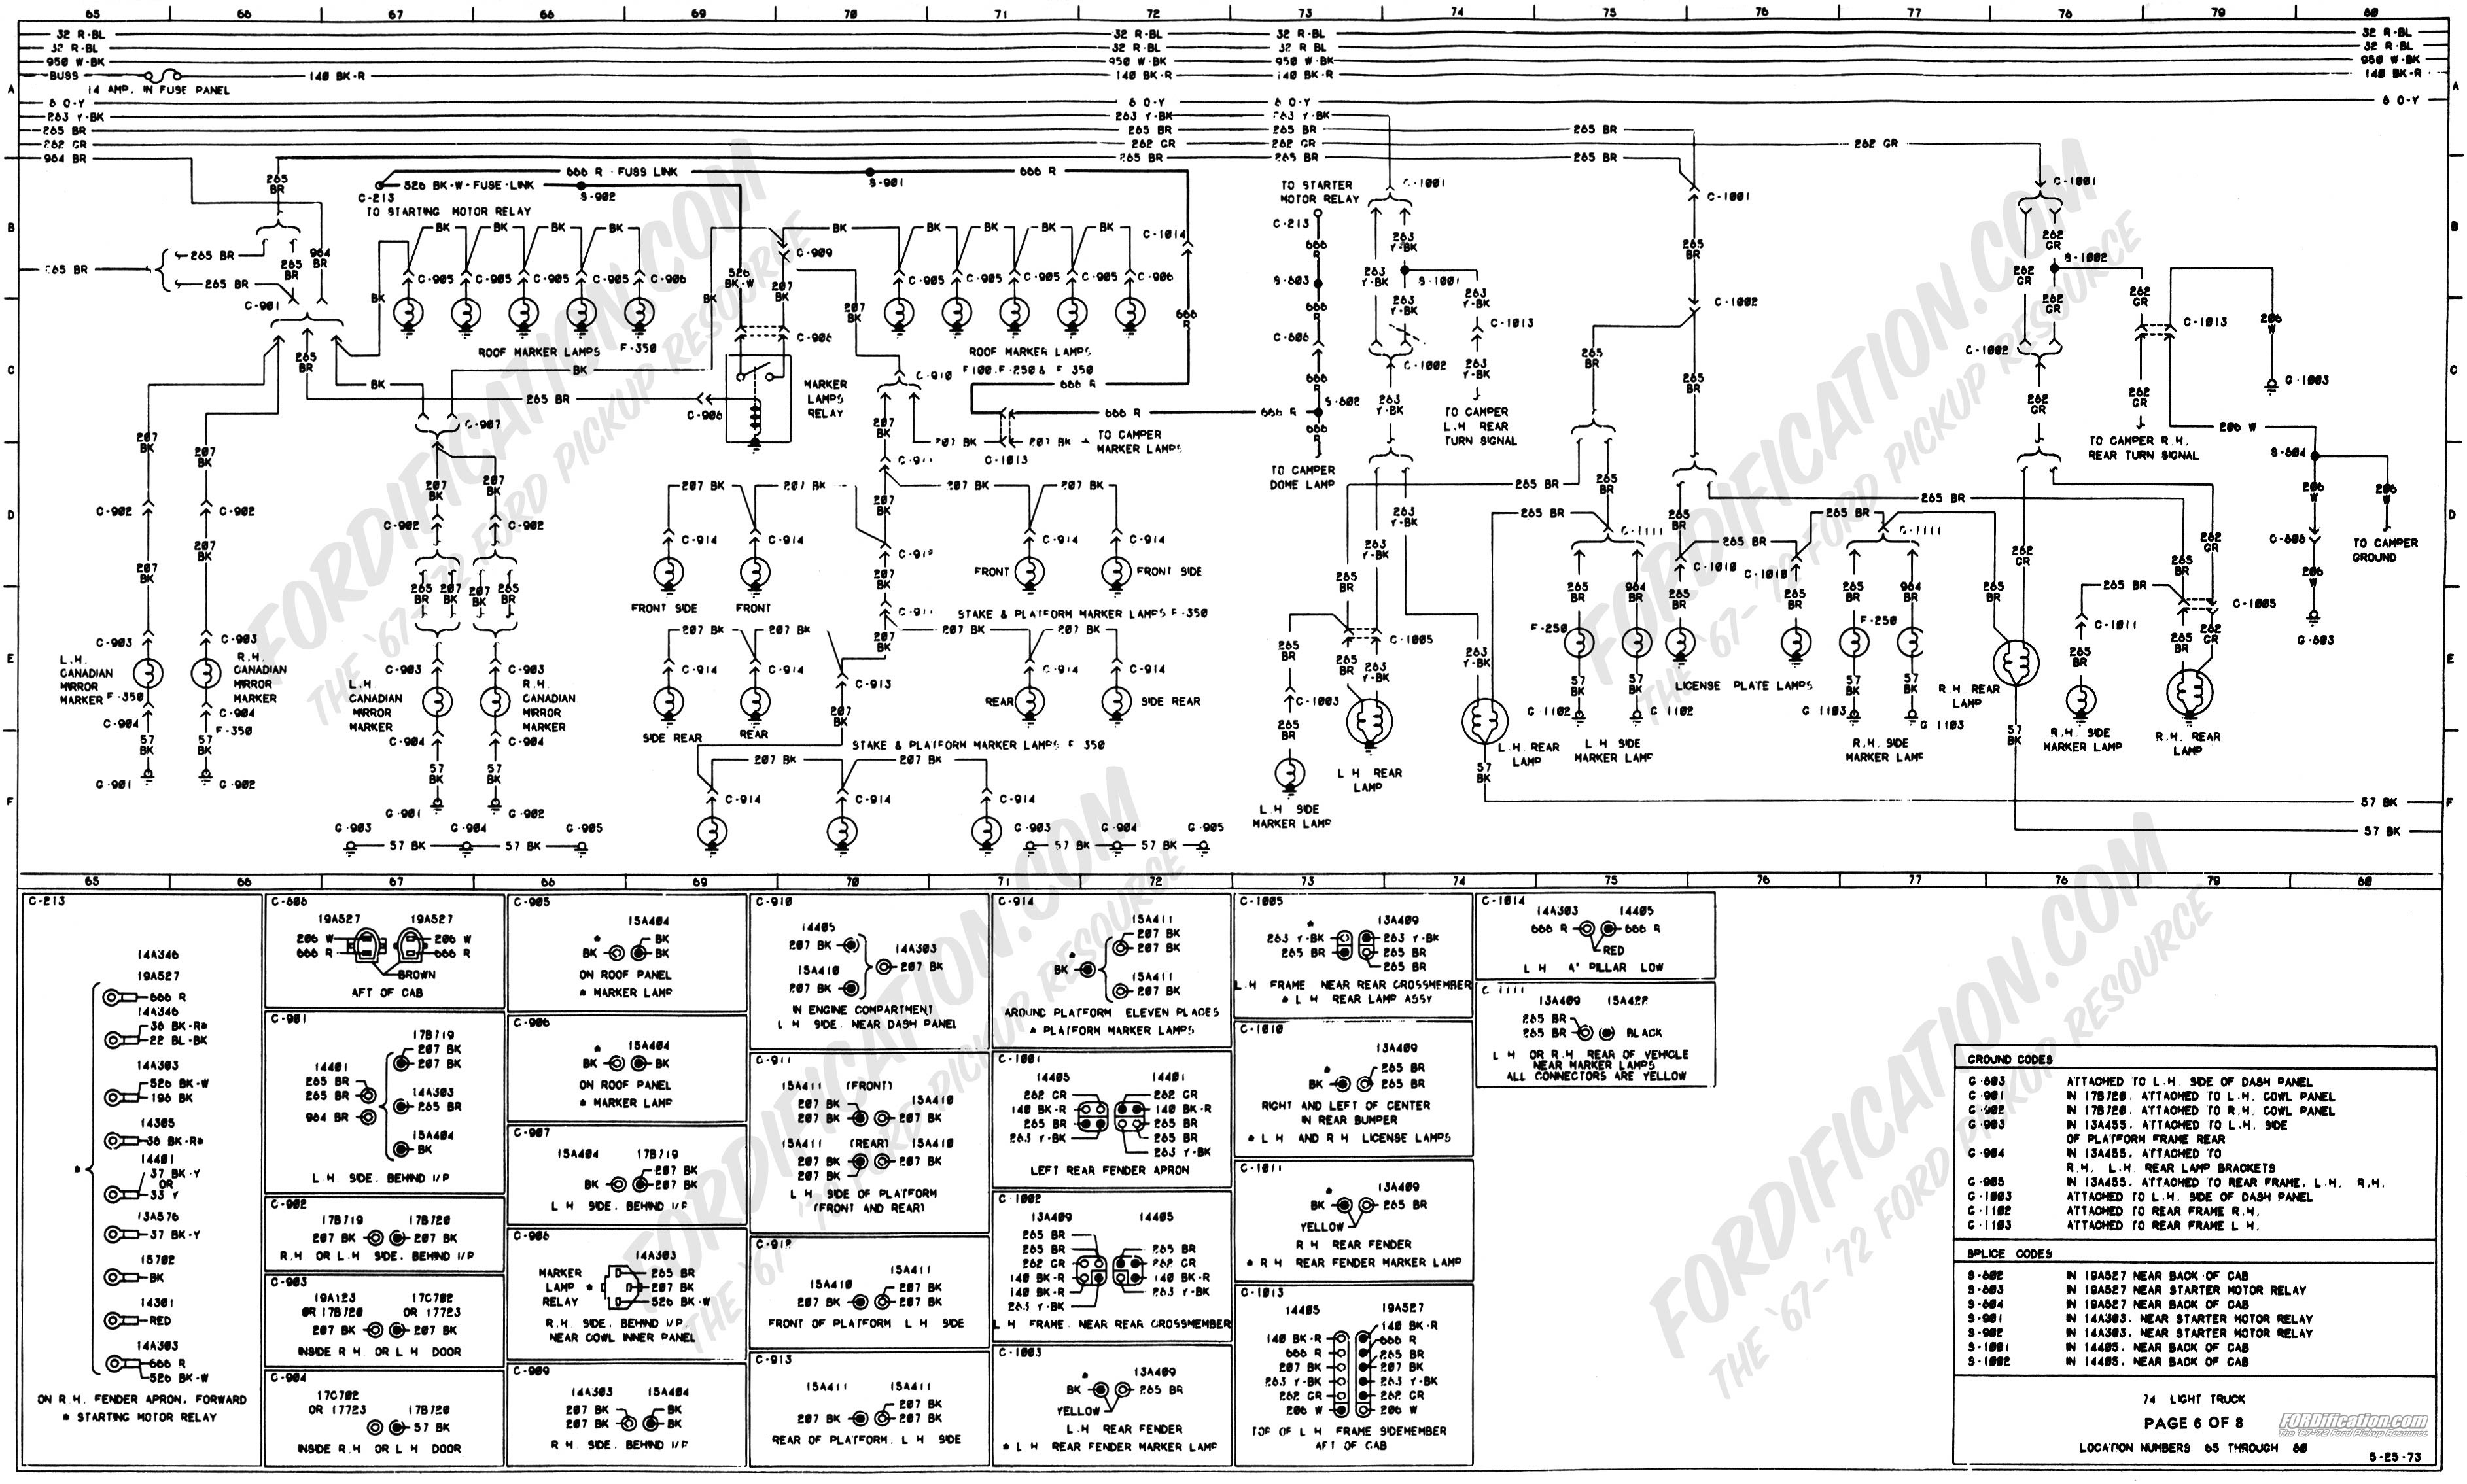 Wiring Diagram For 1977 Ford F150 Find Wiring Diagram \u2022 Ford E-150  Wiring-Diagram 77 Ford F 150 Wiring Diagram